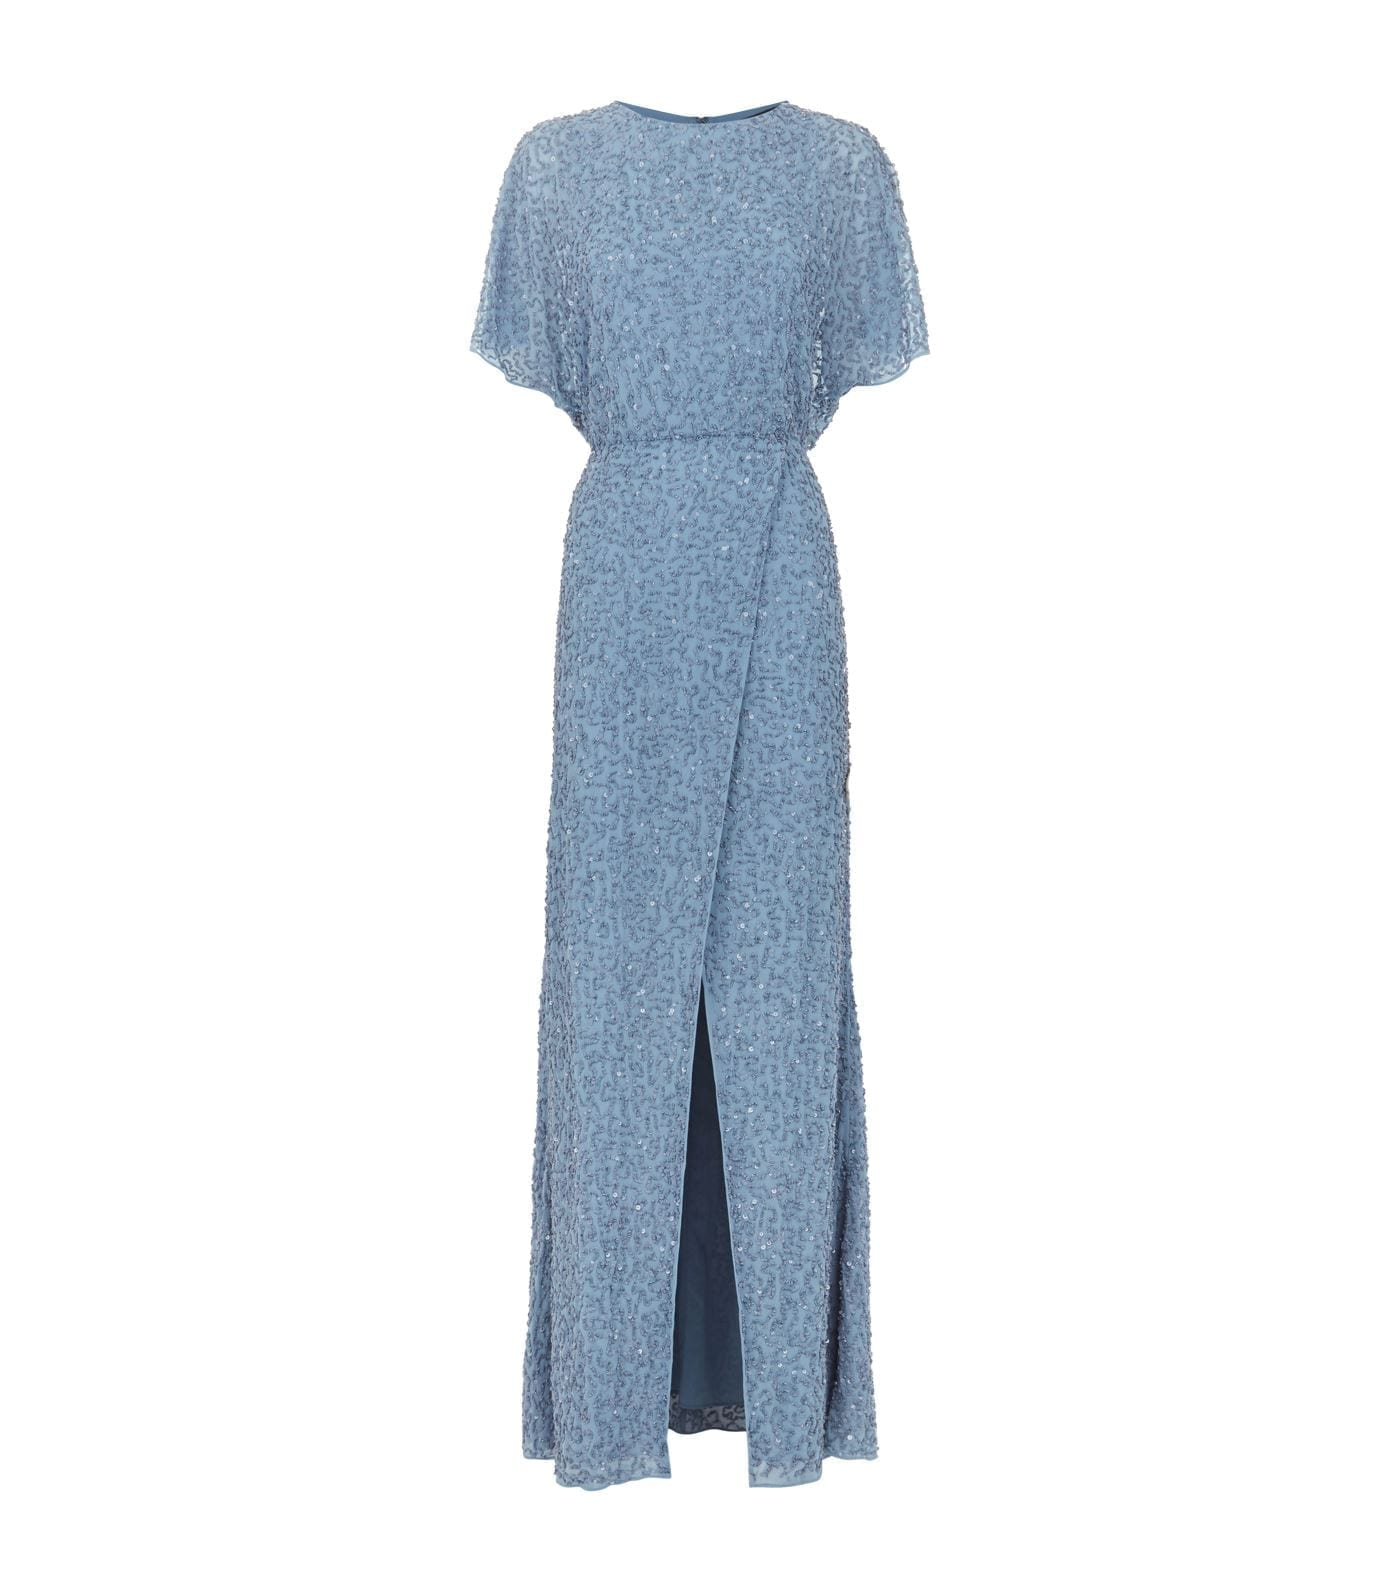 ALICE + OLIVIA Arora Sequin Embellished Blue Gown - We Select Dresses